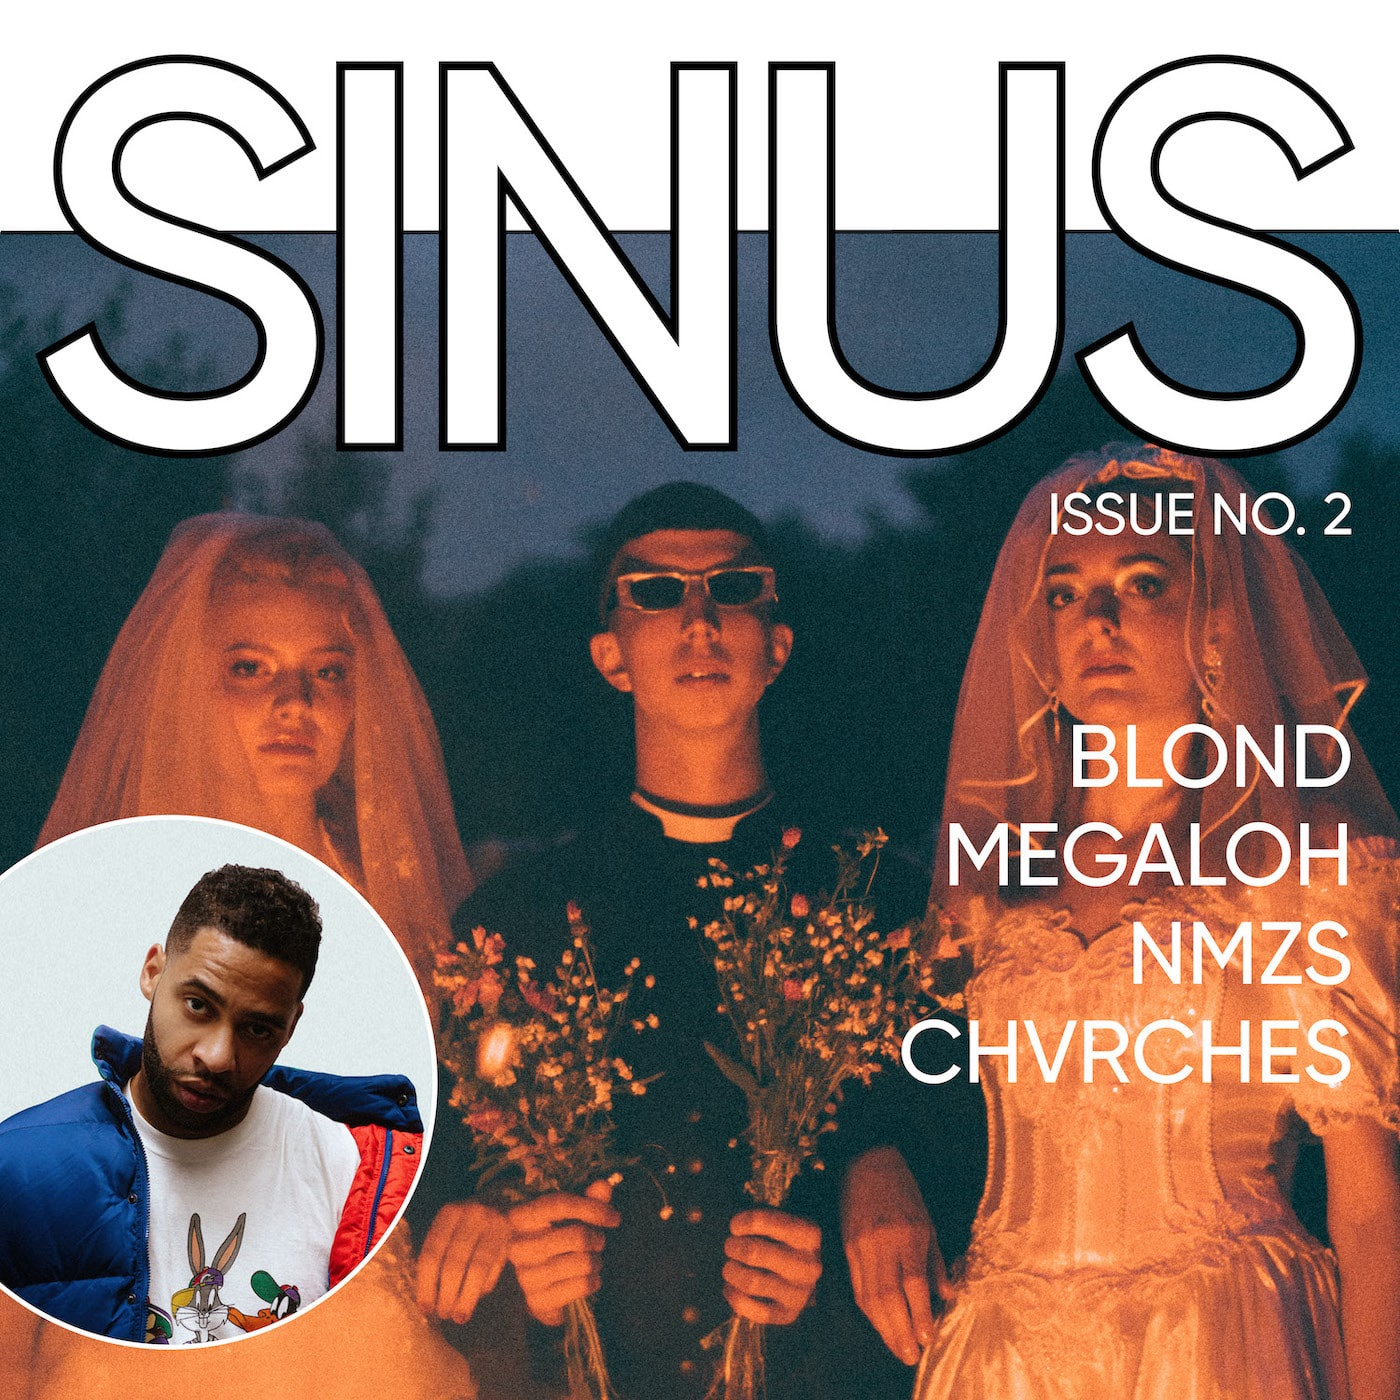 #2 Blond, Megaloh, NMZS, Chvrches